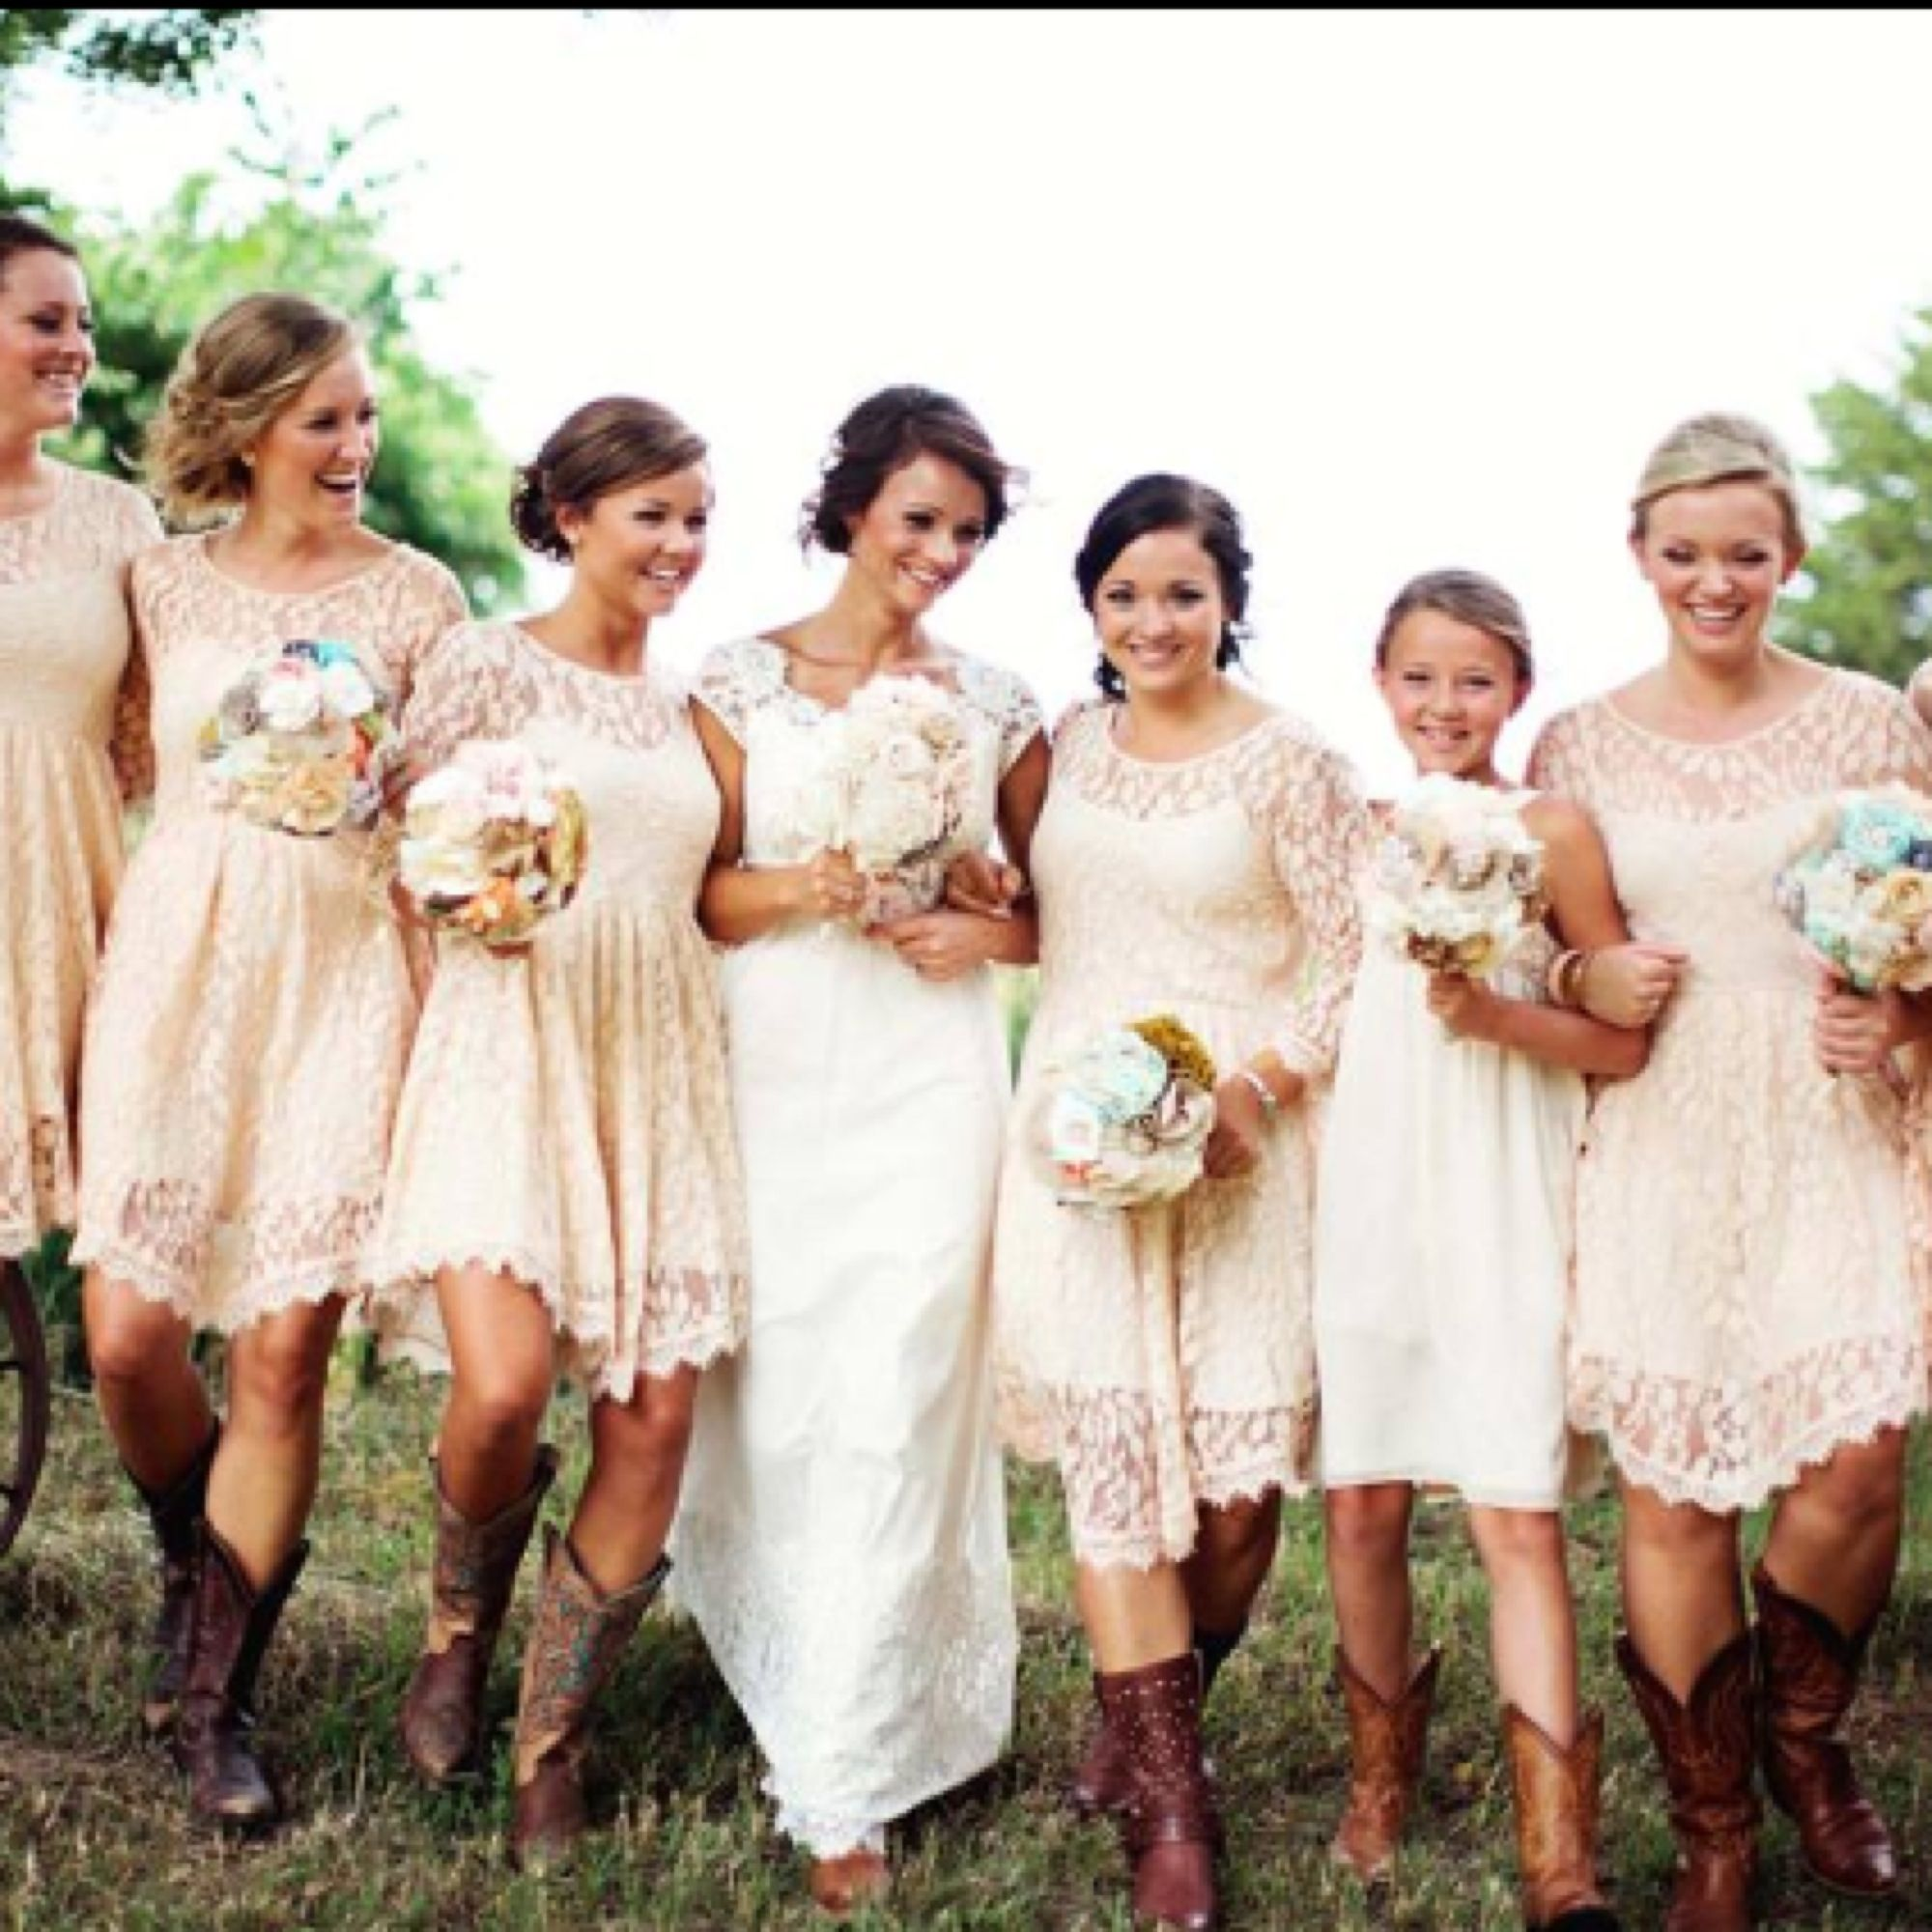 Cowgirls and lace country wedding | Rustic wedding | Pinterest